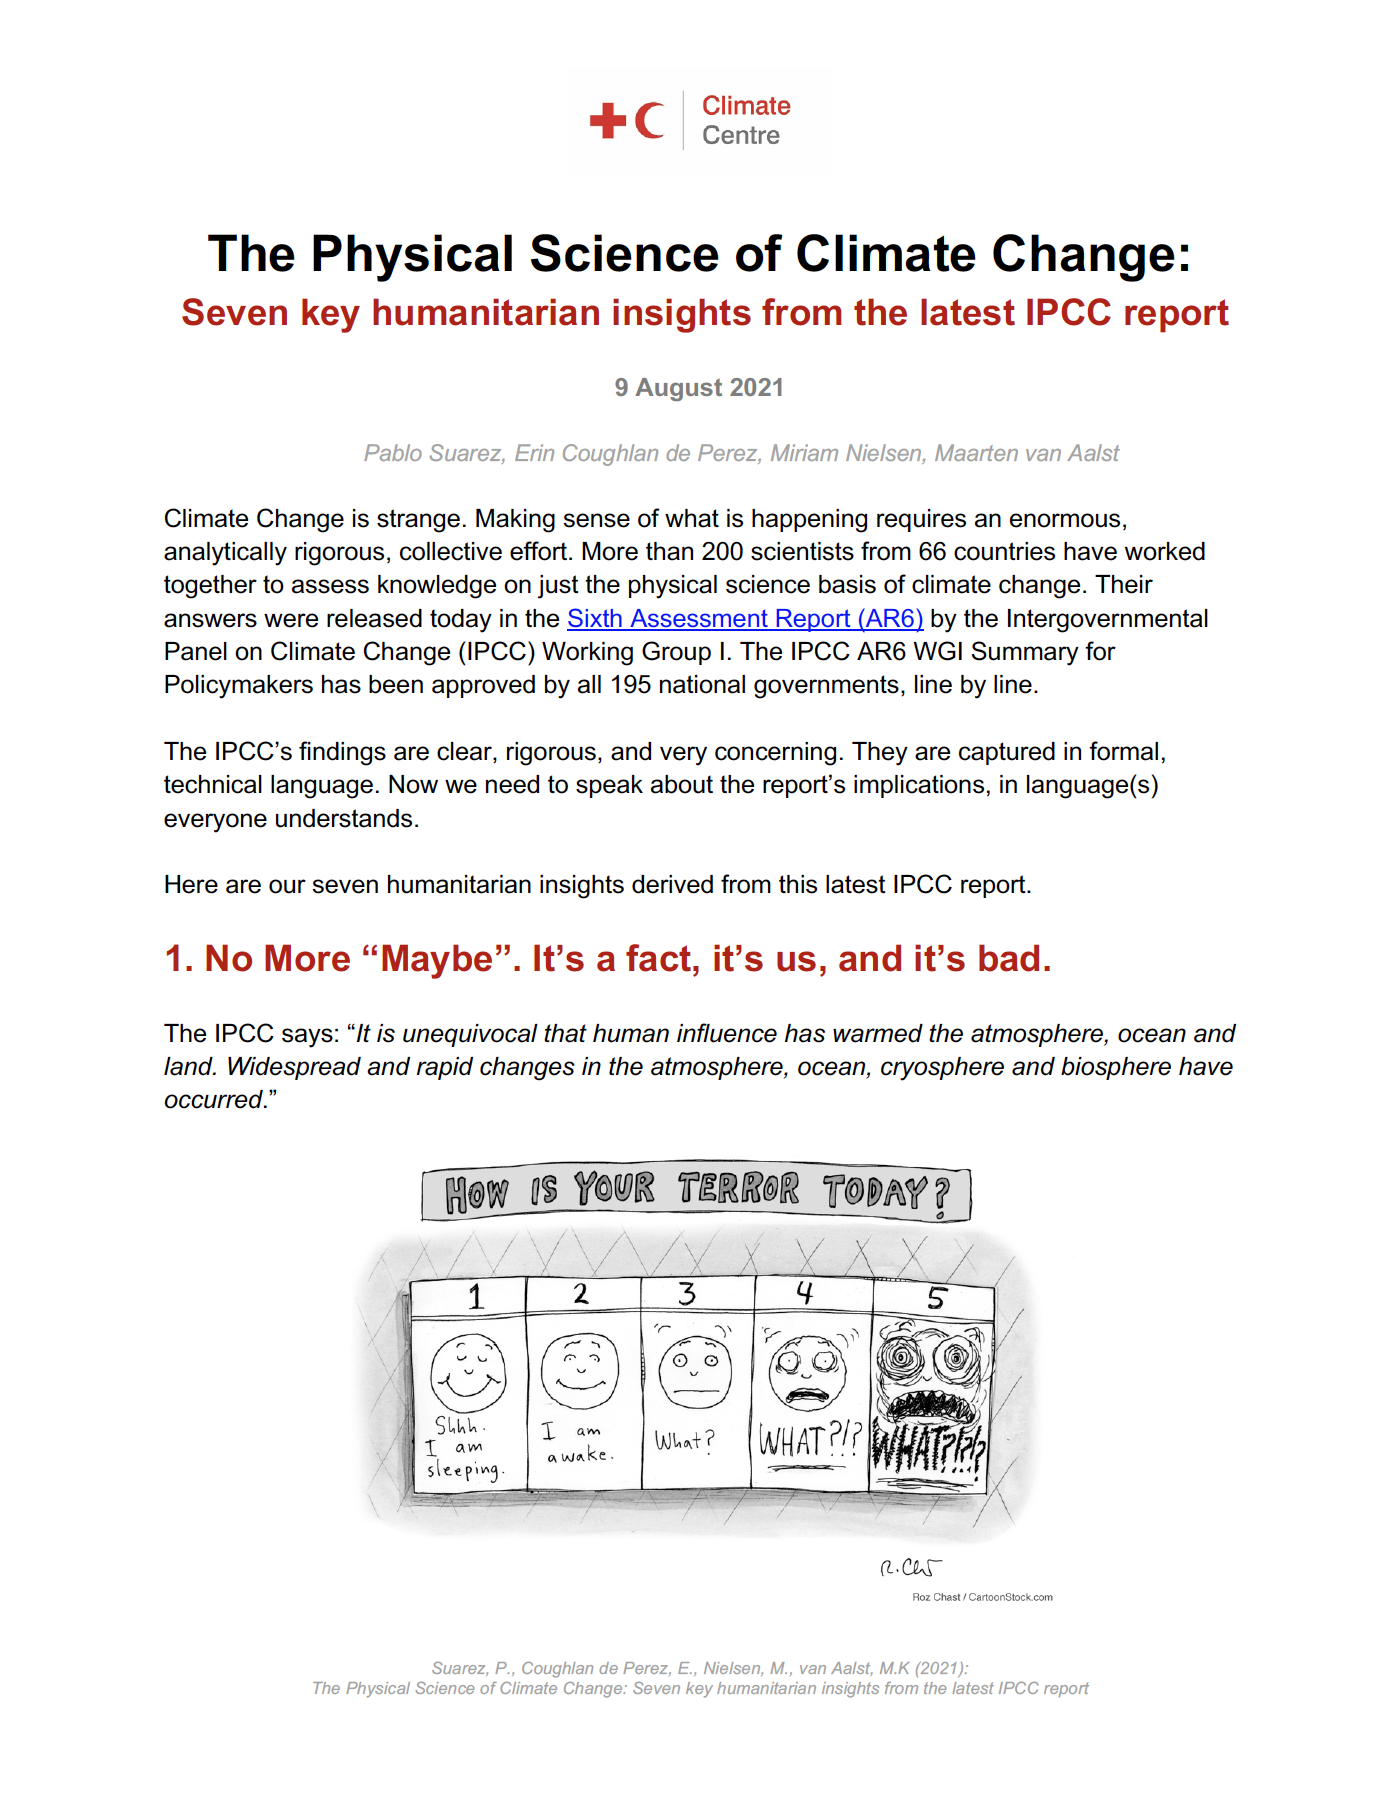 The Physical Science of Climate Change: Seven key humanitarian insights from the latest IPCC report